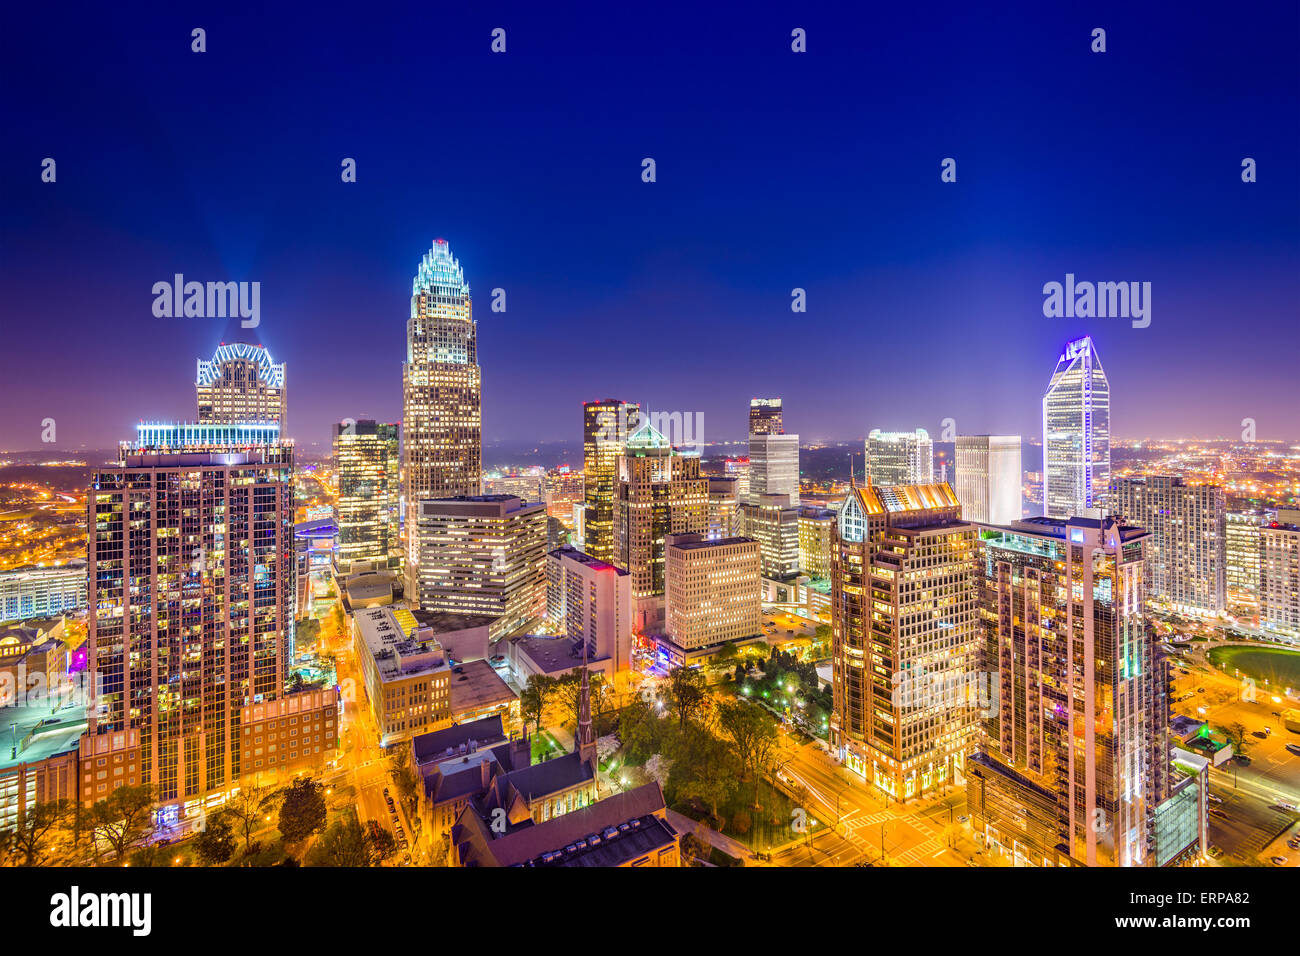 Charlotte, North Carolina, USA uptown skyline at night. - Stock Image